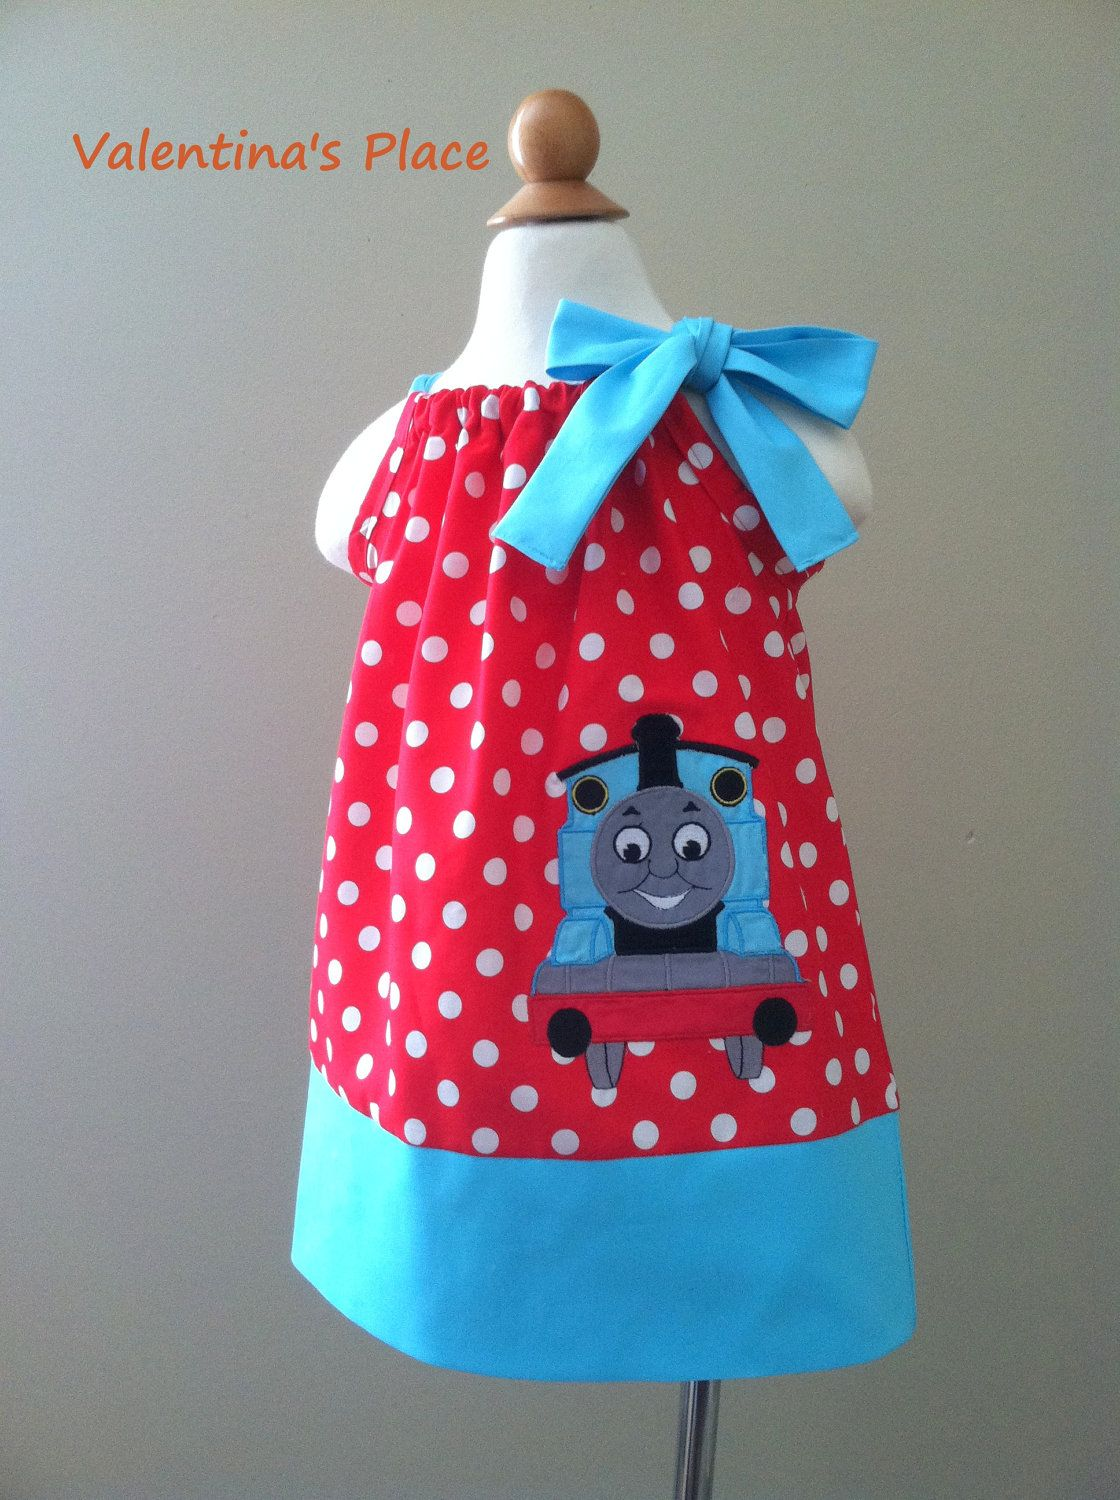 Thomas The Train Pillowcase Mesmerizing Thomas The Train Pillowcase Style Dress For Girls  Birthdays Review